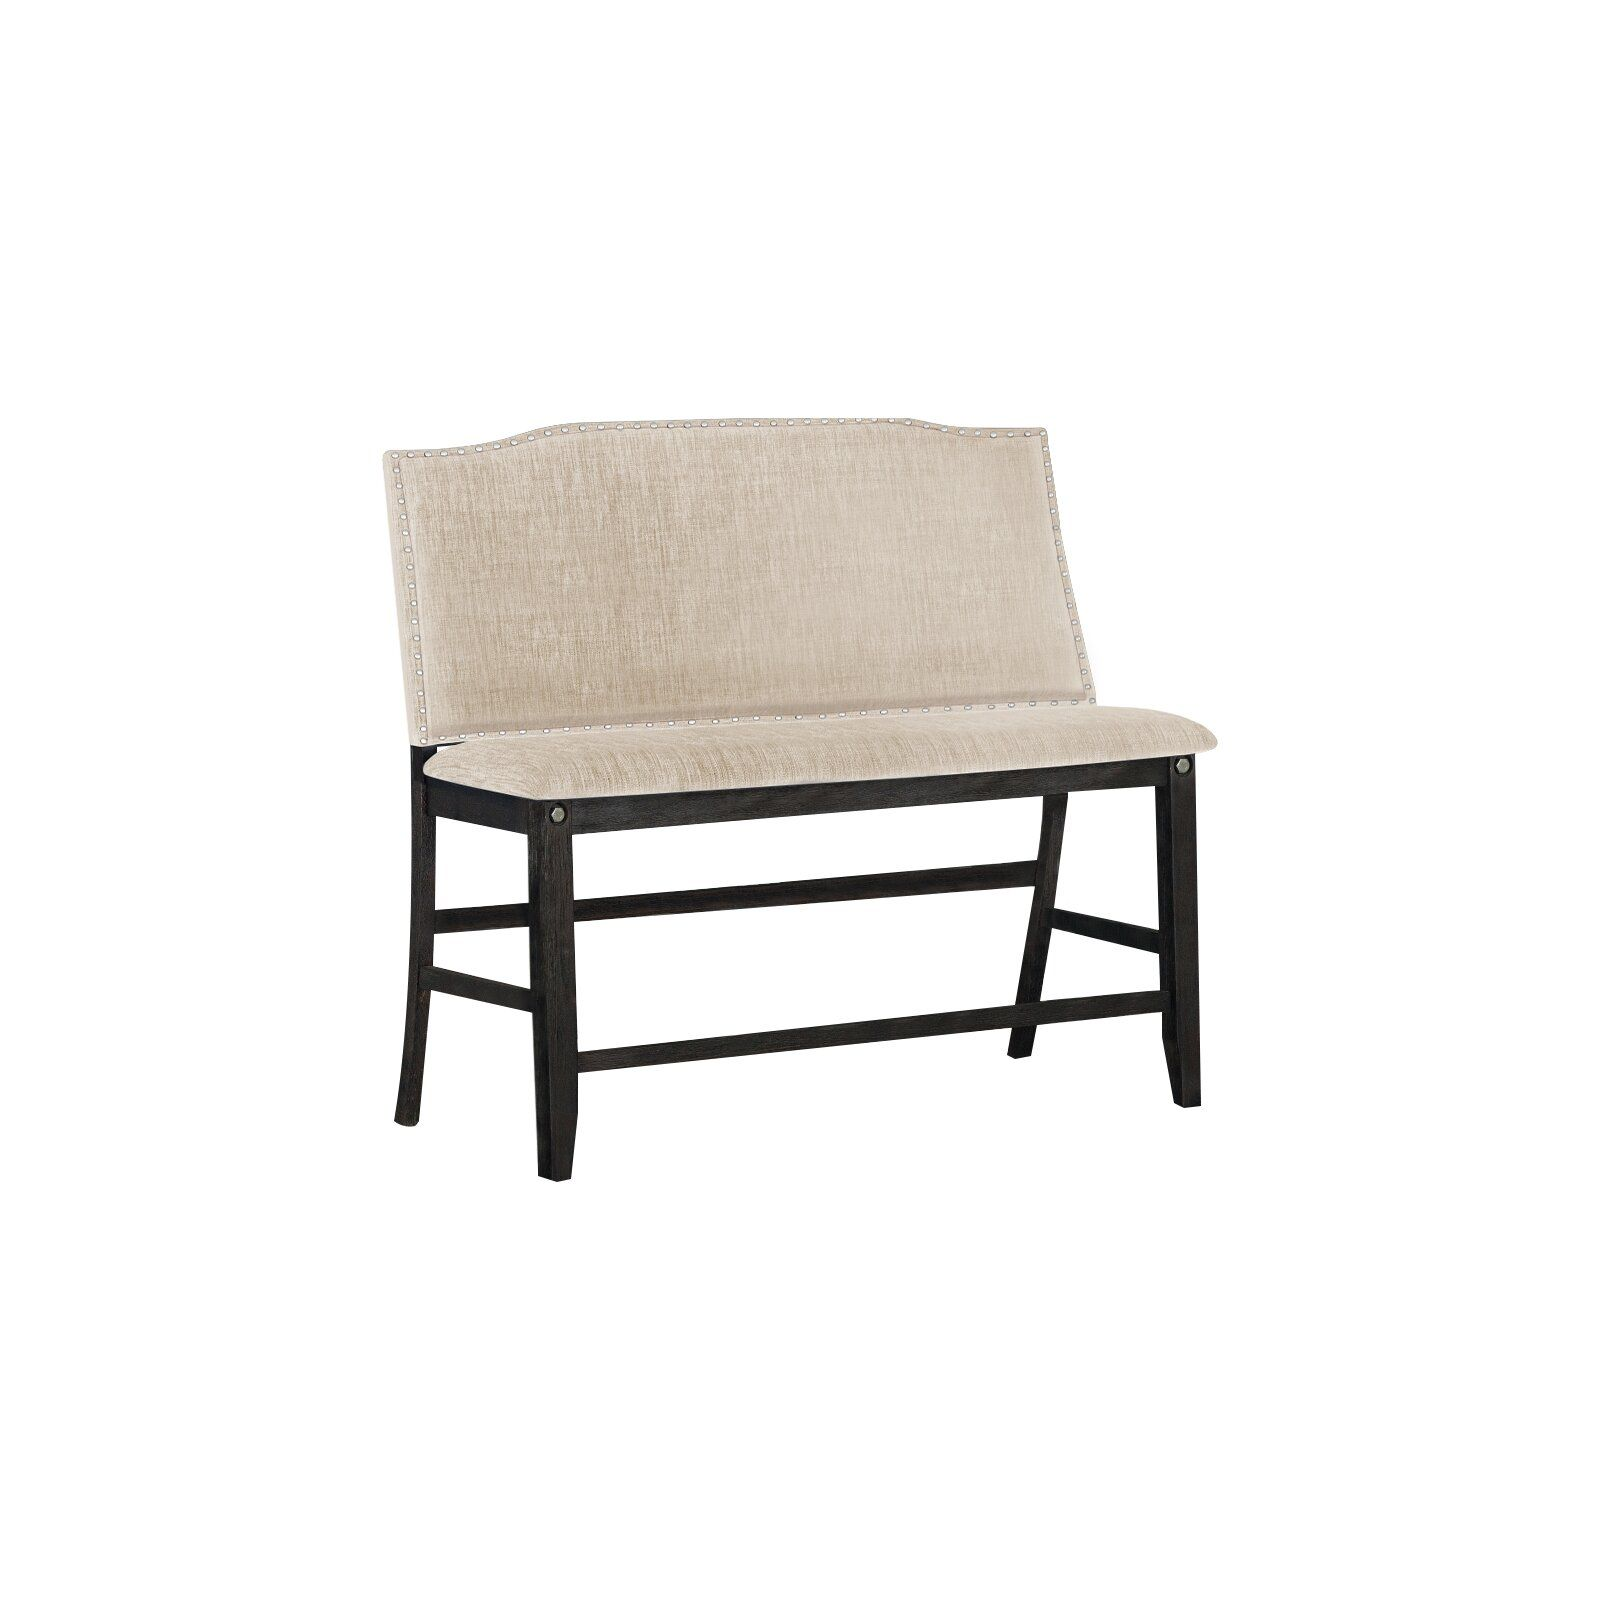 Darby Home Co Dylan Counter Height Upholstered Bench Wayfair Upholstered Dining Bench Upholstered Storage Bench Upholstered Bench